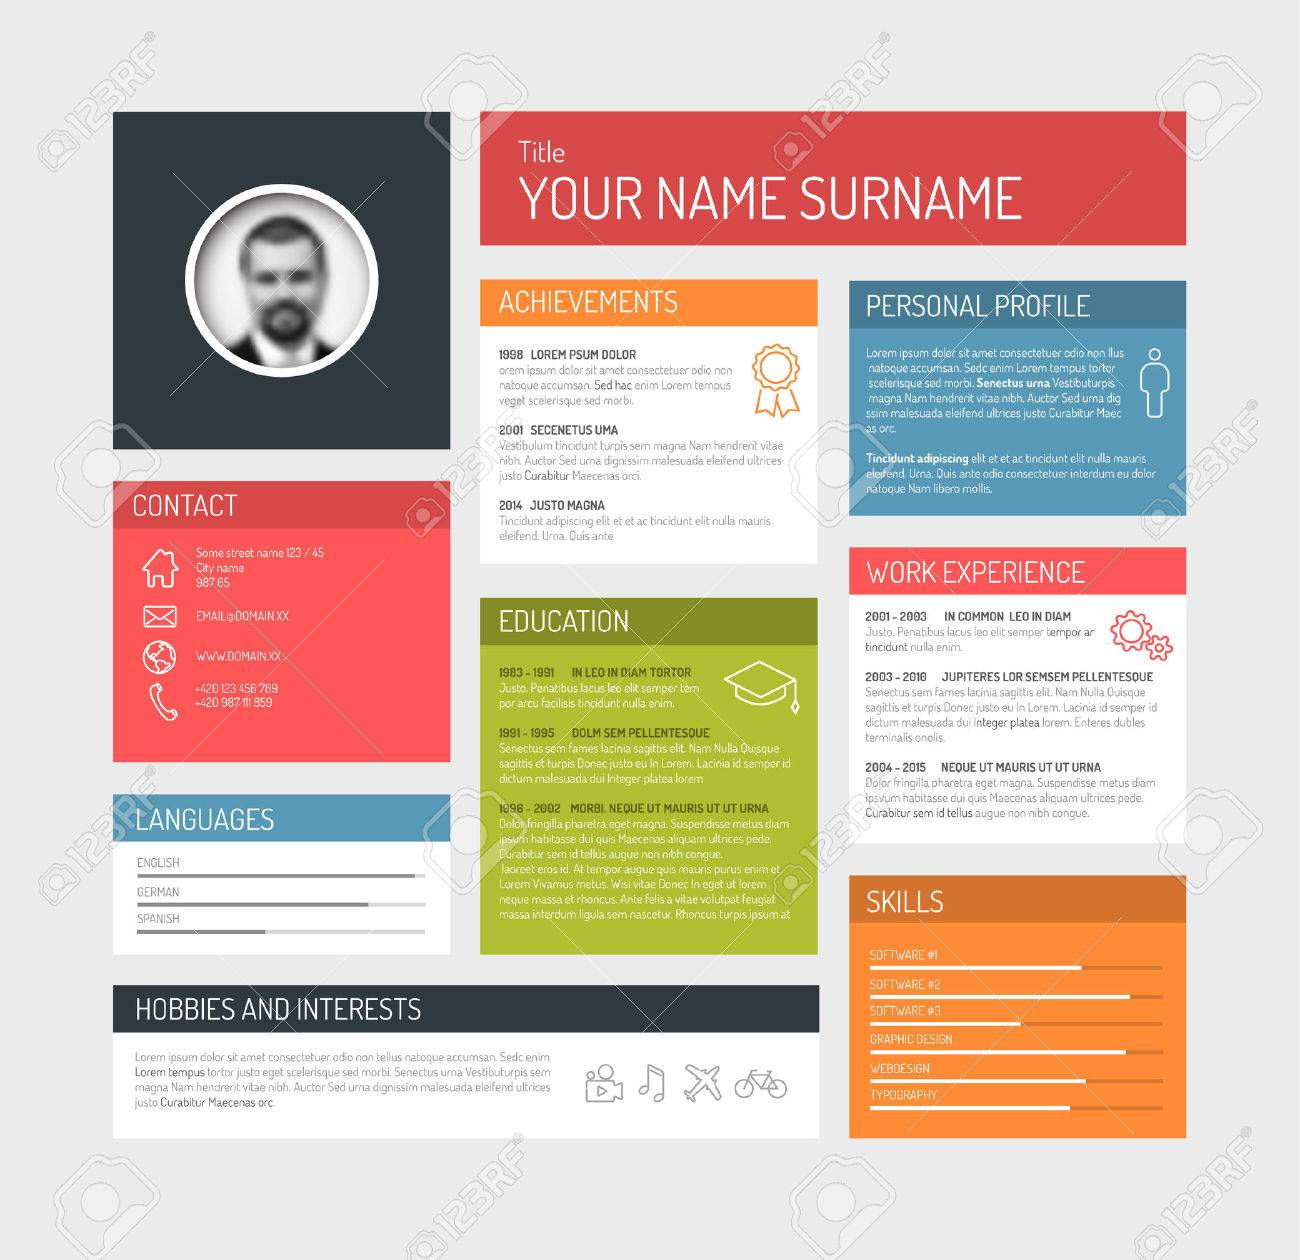 resume template website resume template website - Website Resume Templates